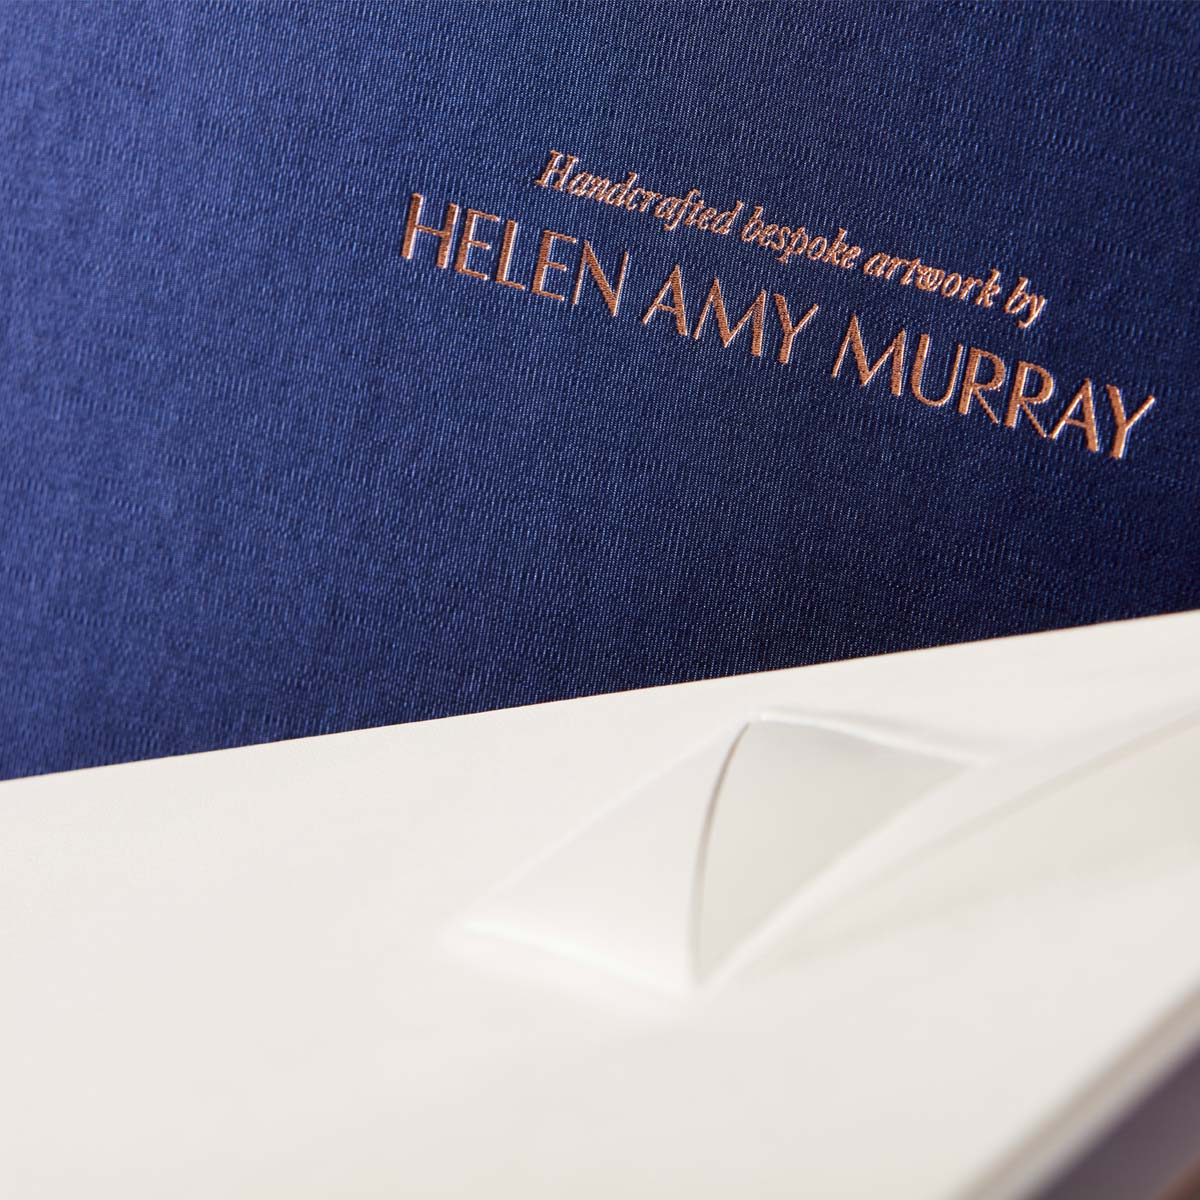 helen amy murray, bespoke leather elevated to art